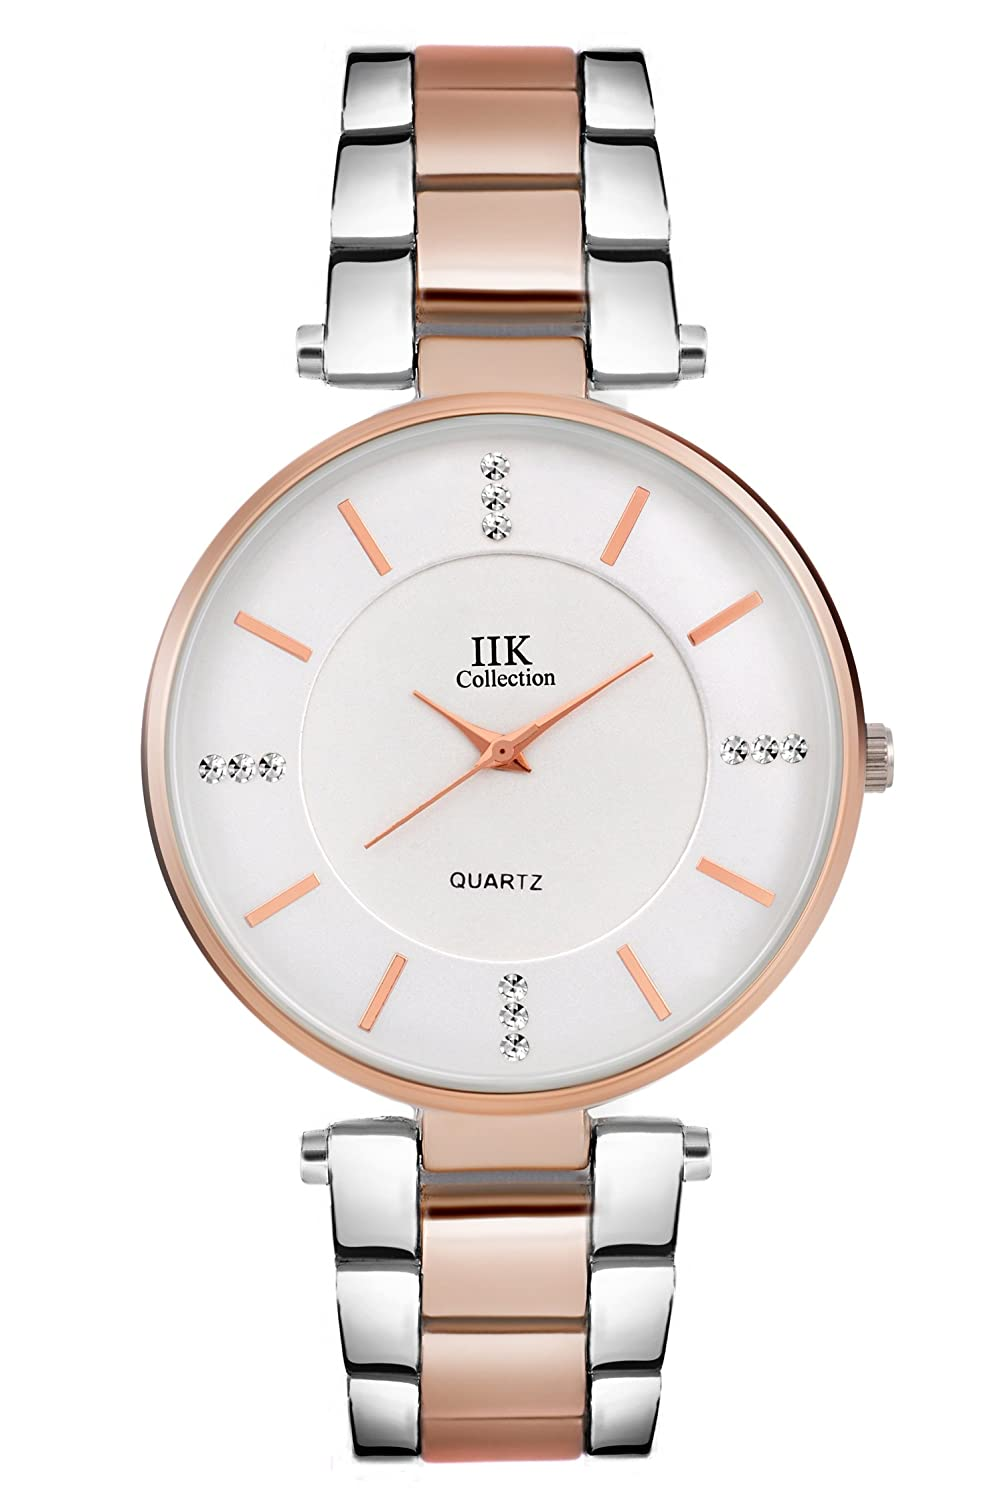 IIK Collection Watches Analogue Silver Big Size Dial Girl's